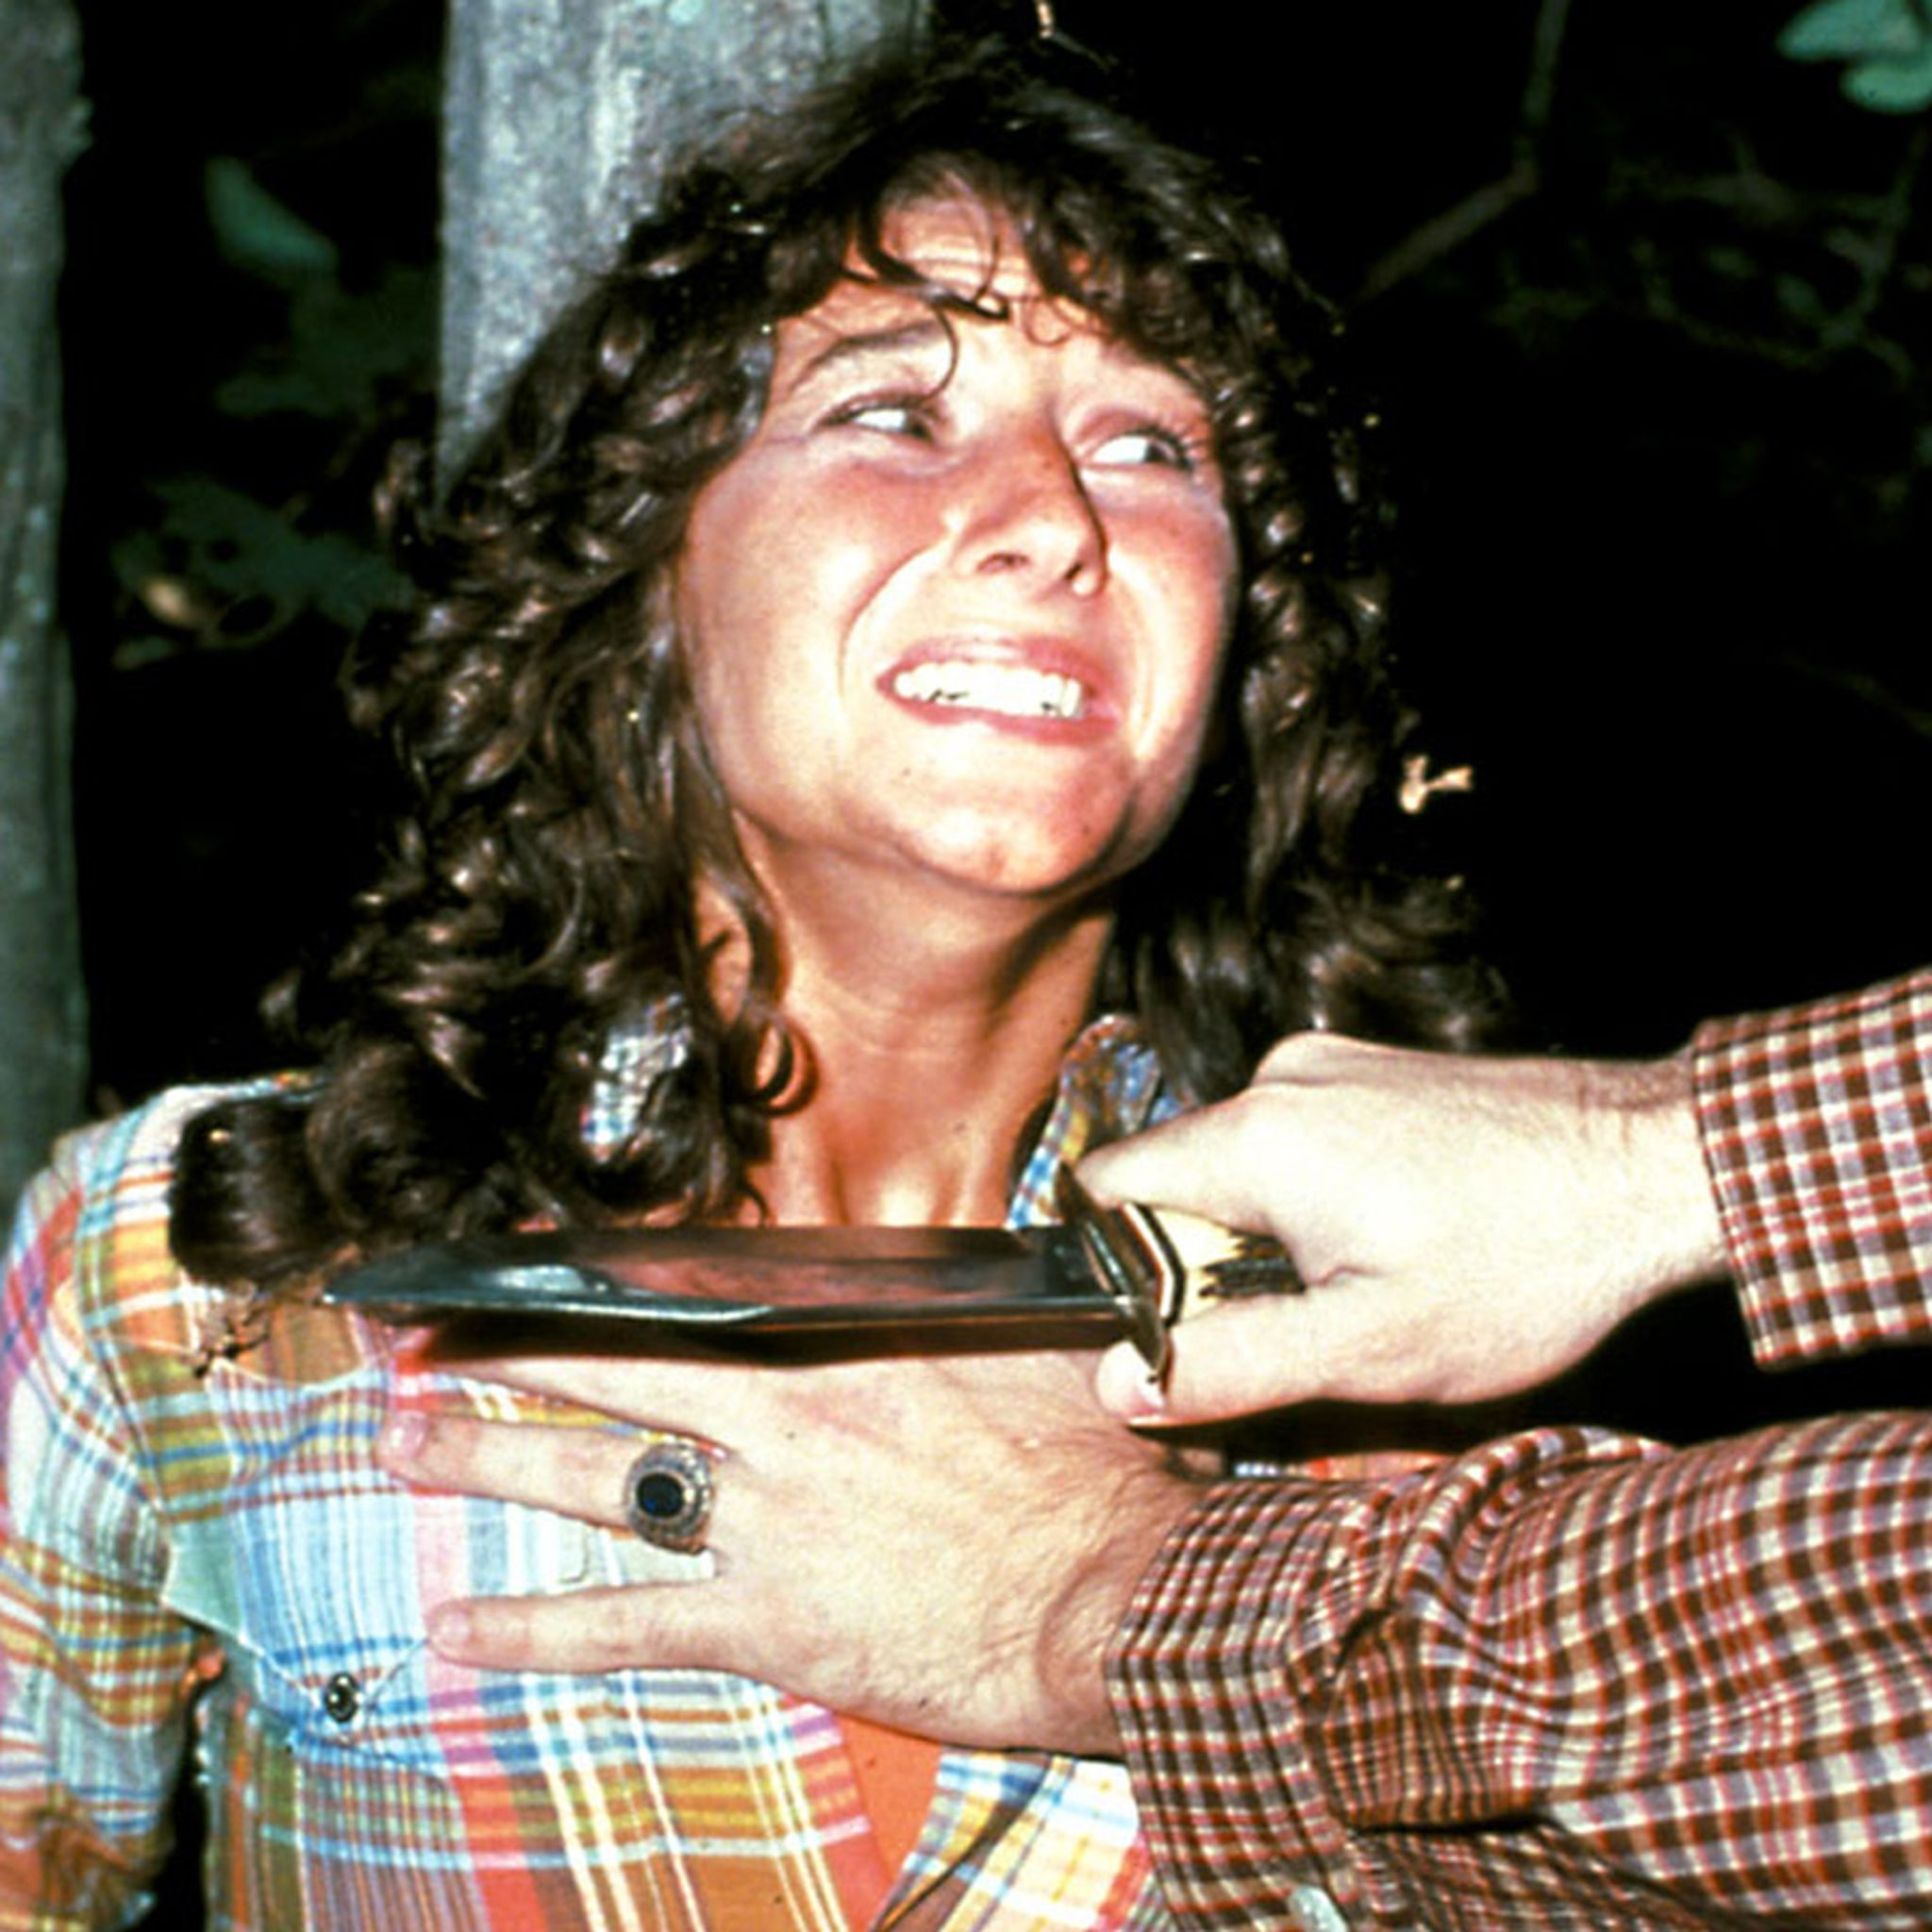 Annie in 'Friday The 13th' 'Memba Her?!